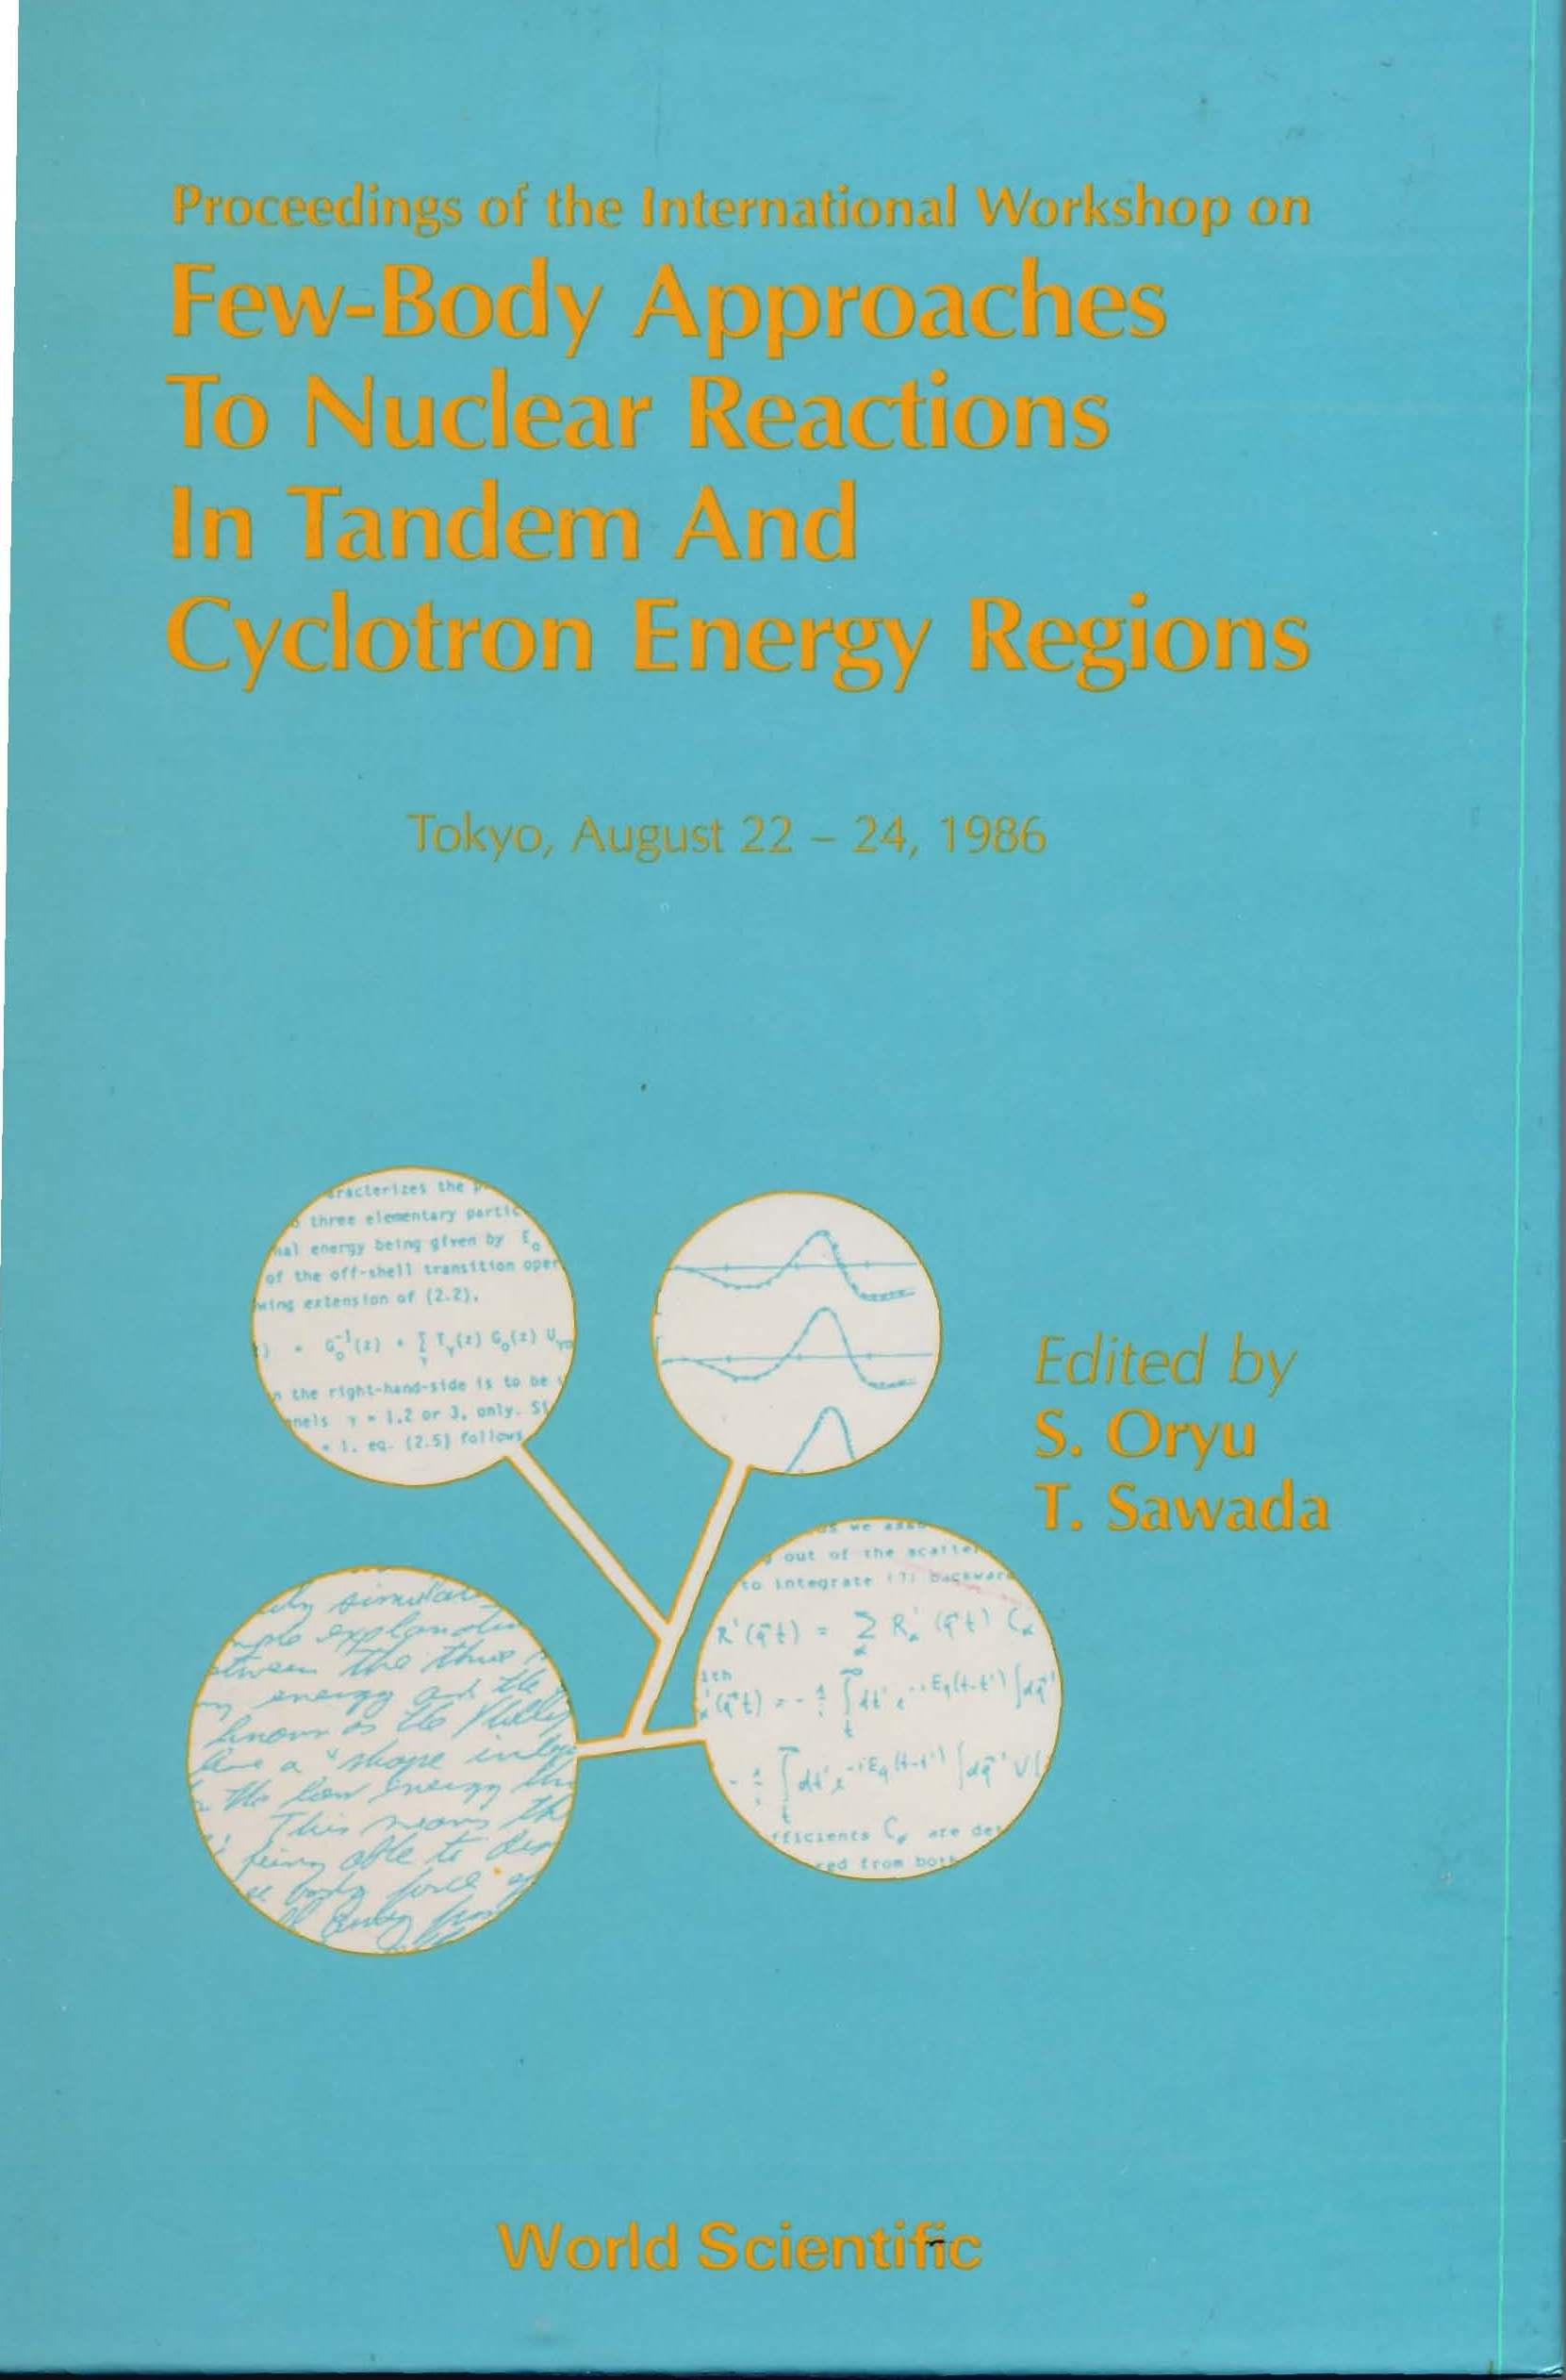 Proceedings of the International Workshop on Few-Body Approaches to Nuclear Reactions in Tandem and Cyclotron Energy Regions